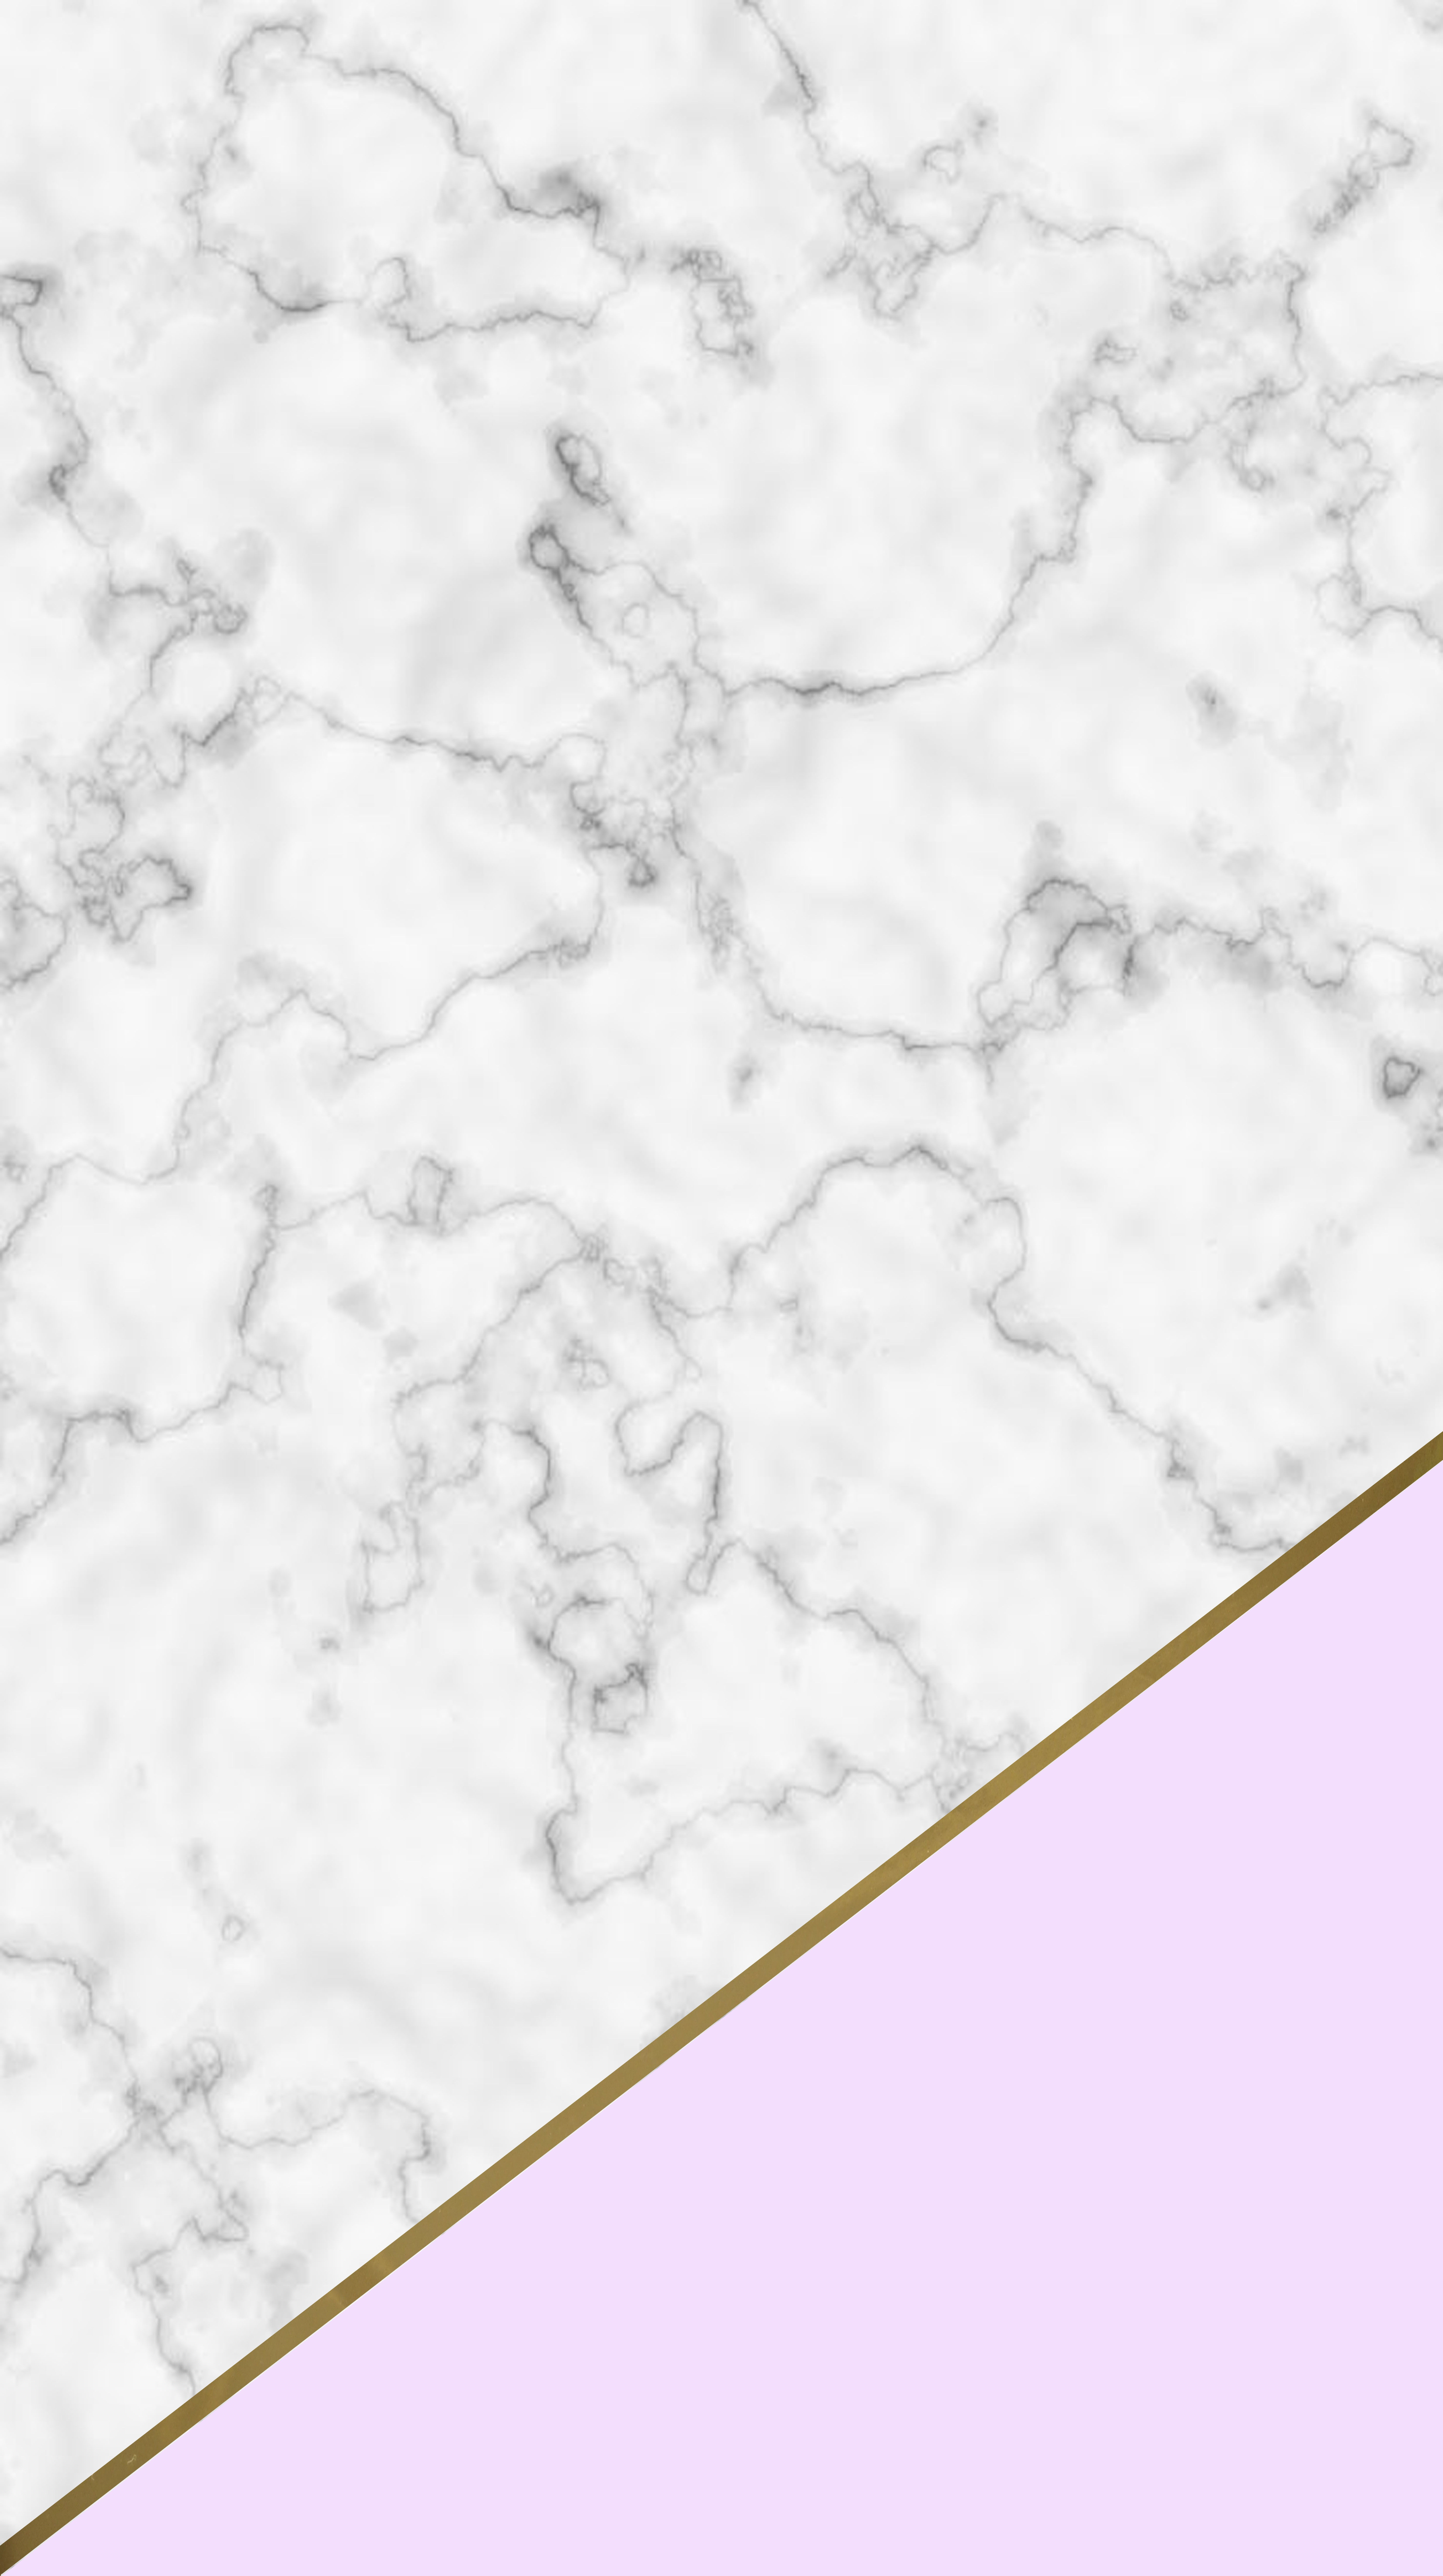 Marble, gold & lilac iPhone wallpaper // Beauty and the ...